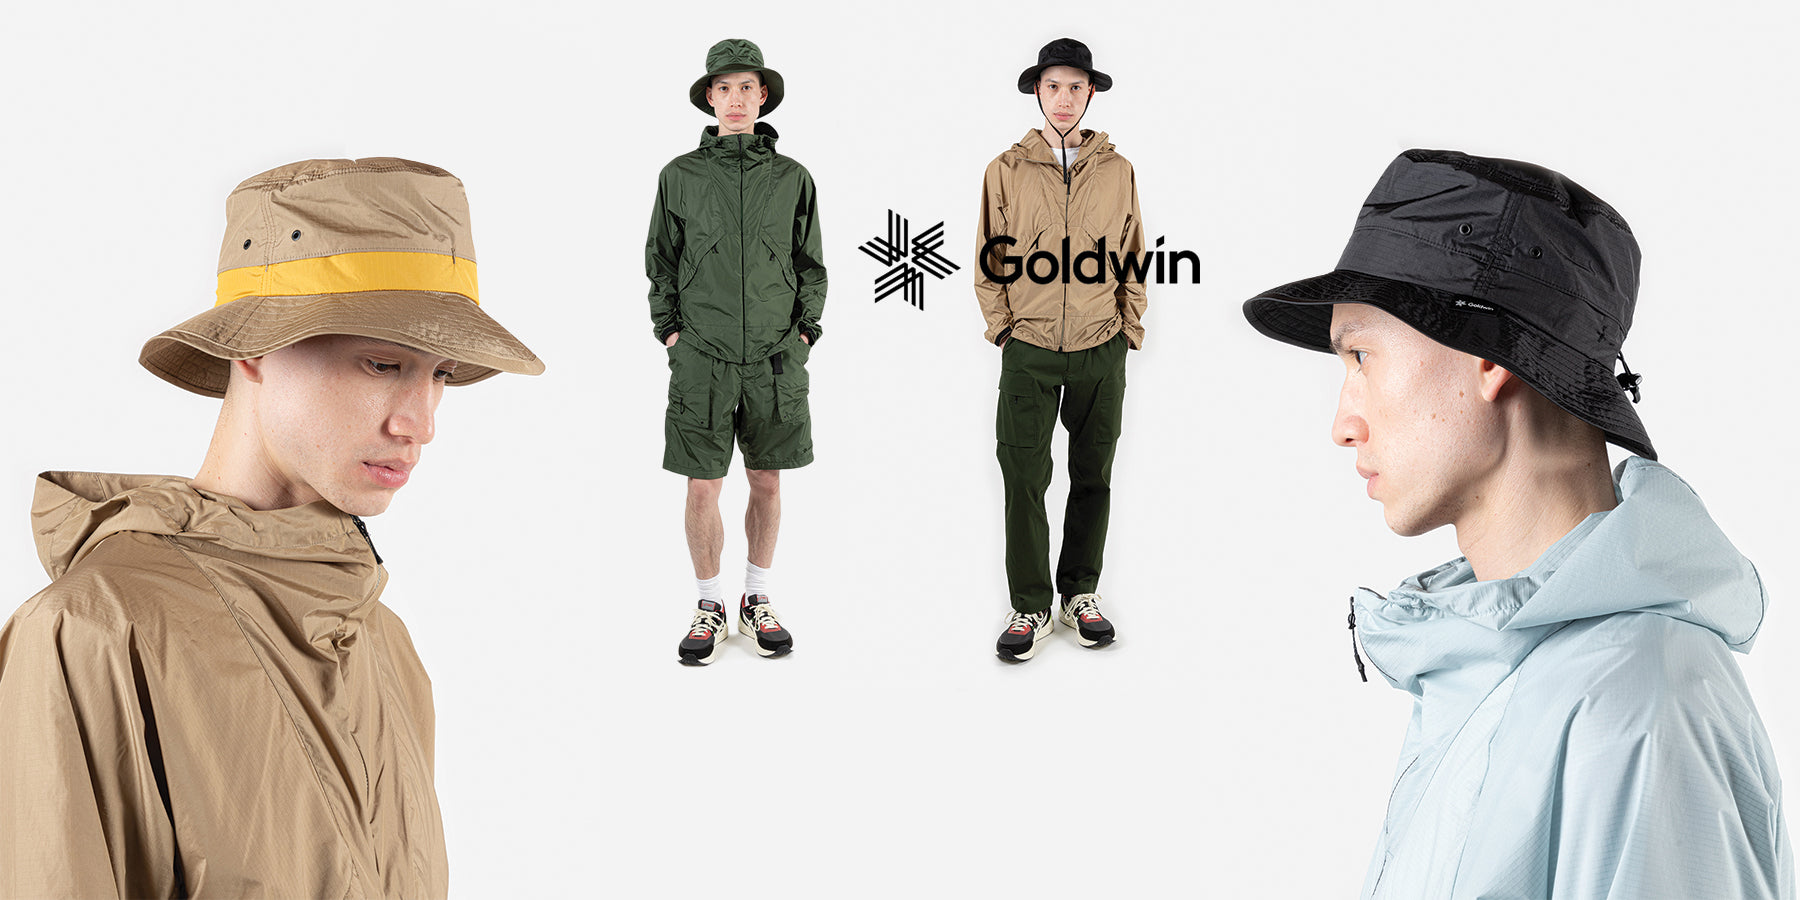 goldwin spring summer 21 element light jacket lifestyle available at wallace mercantile shop vancouver canada